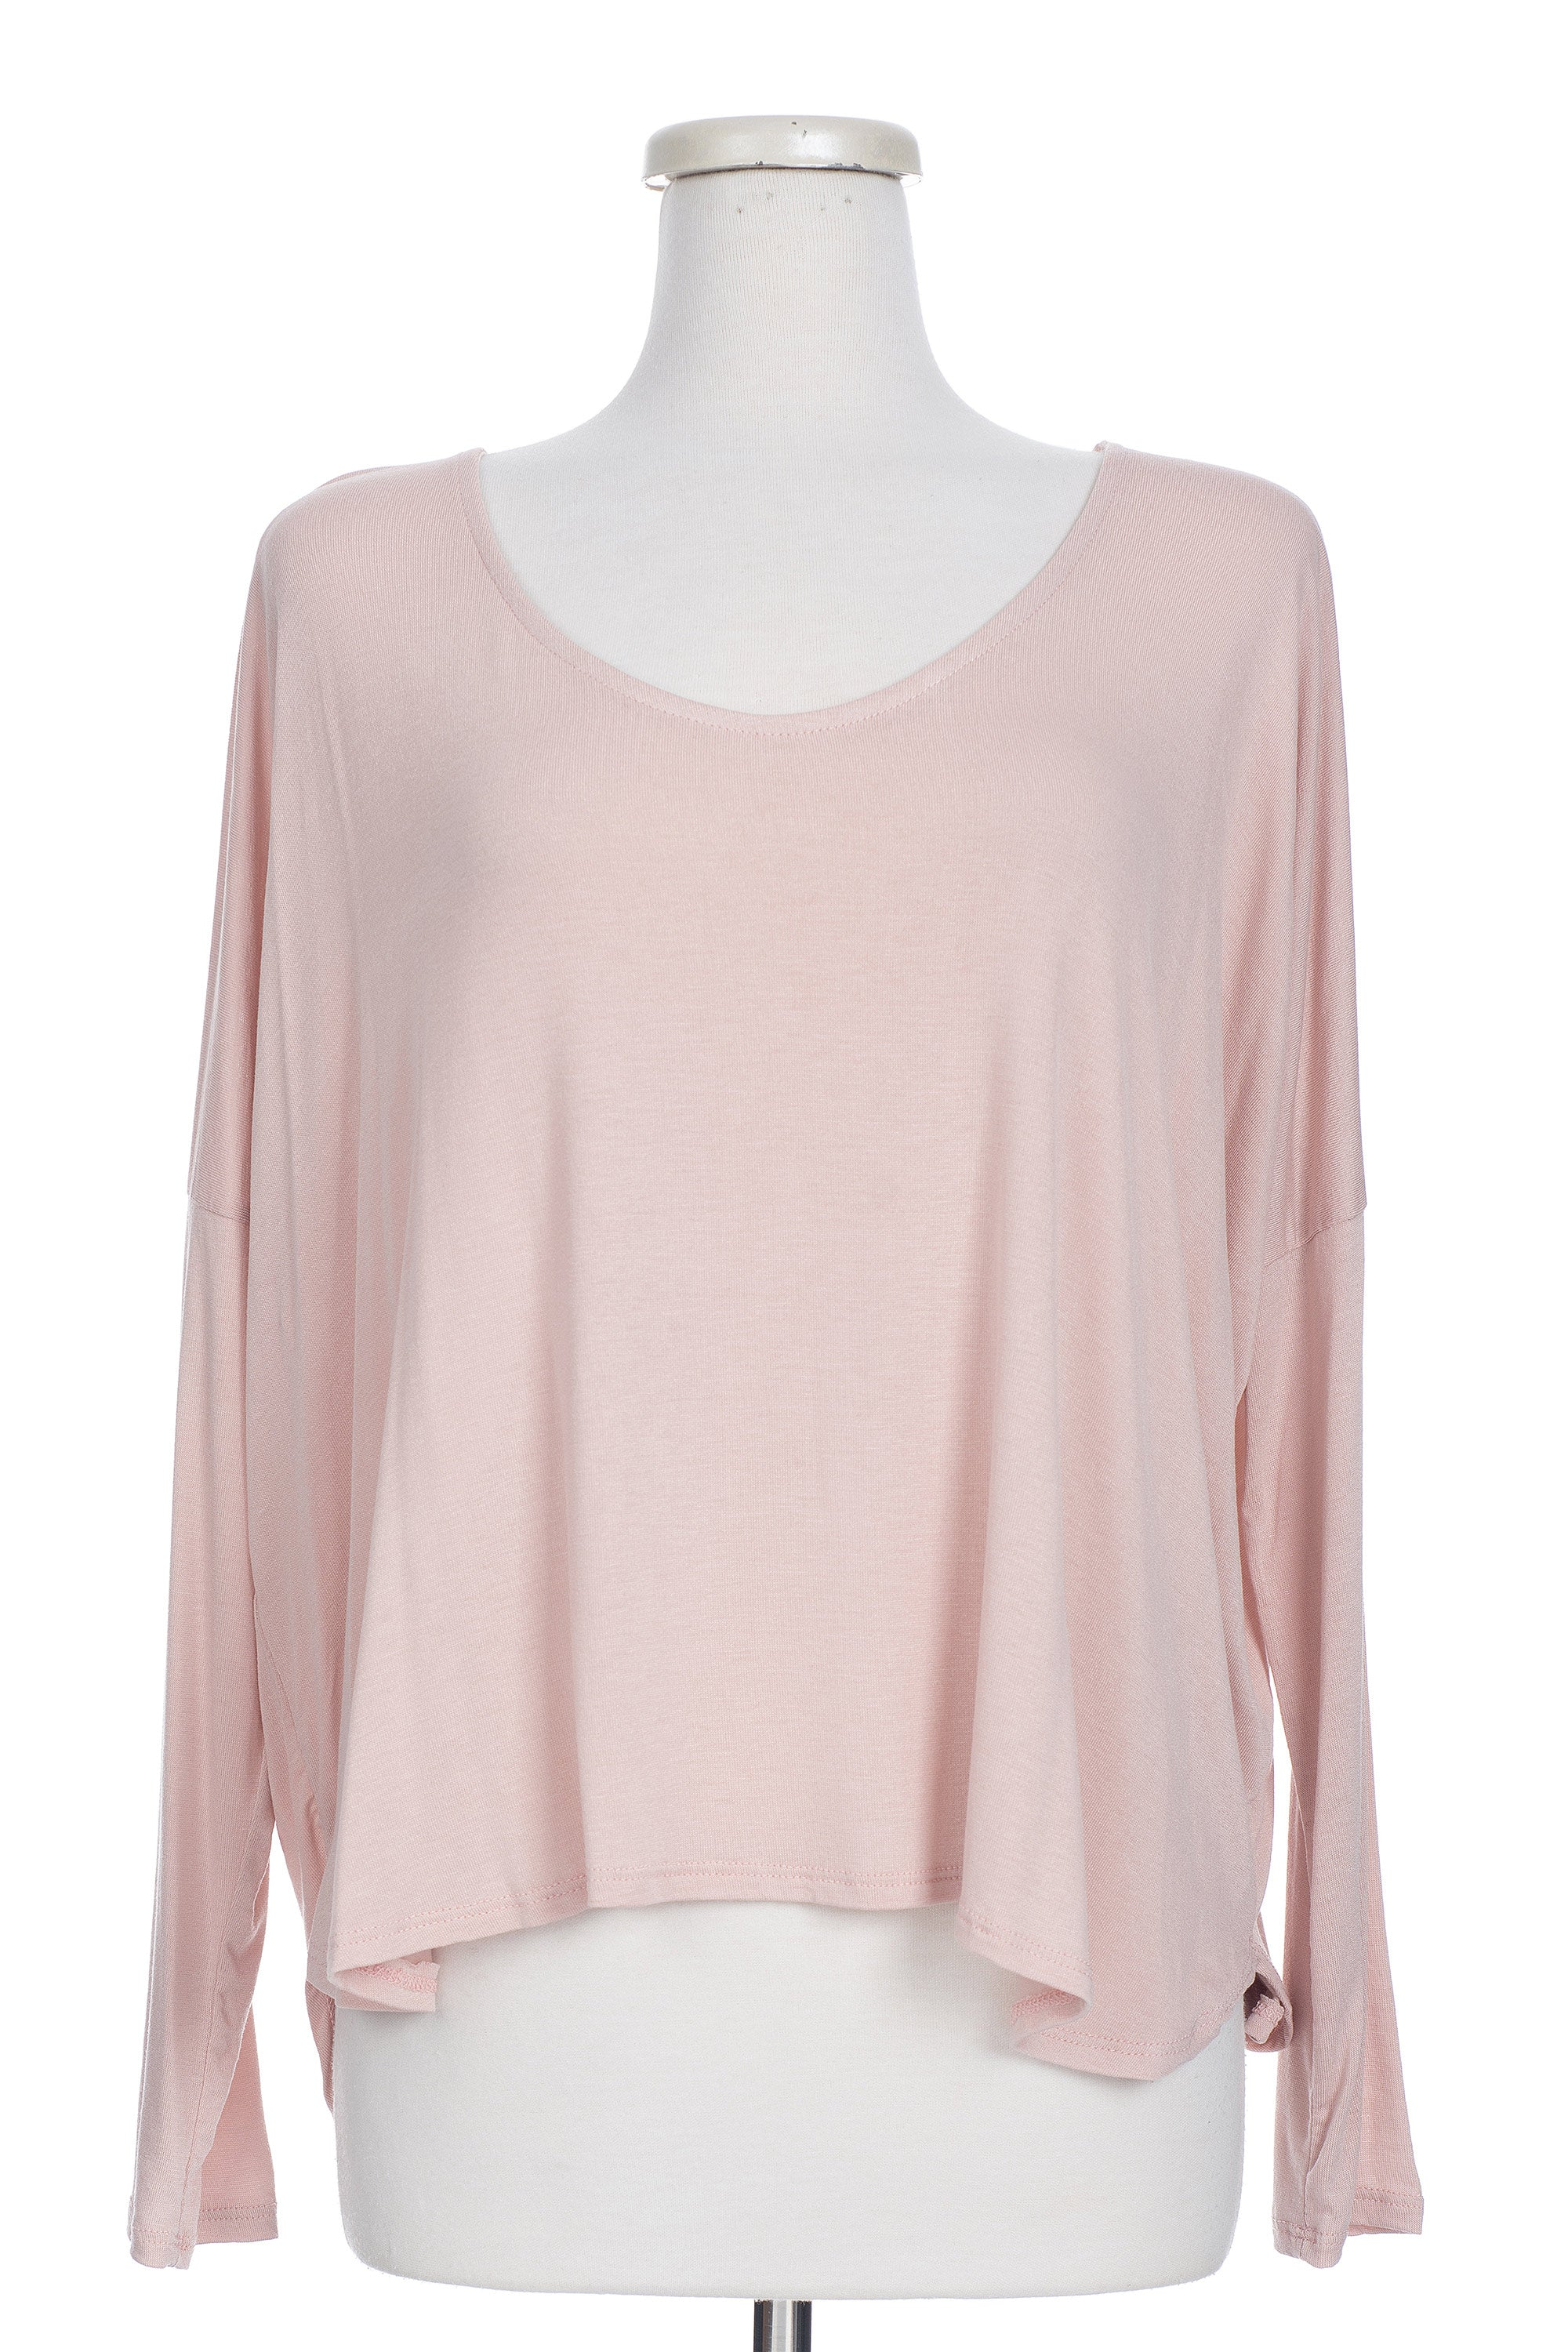 Type 2 Dusty Rose Top